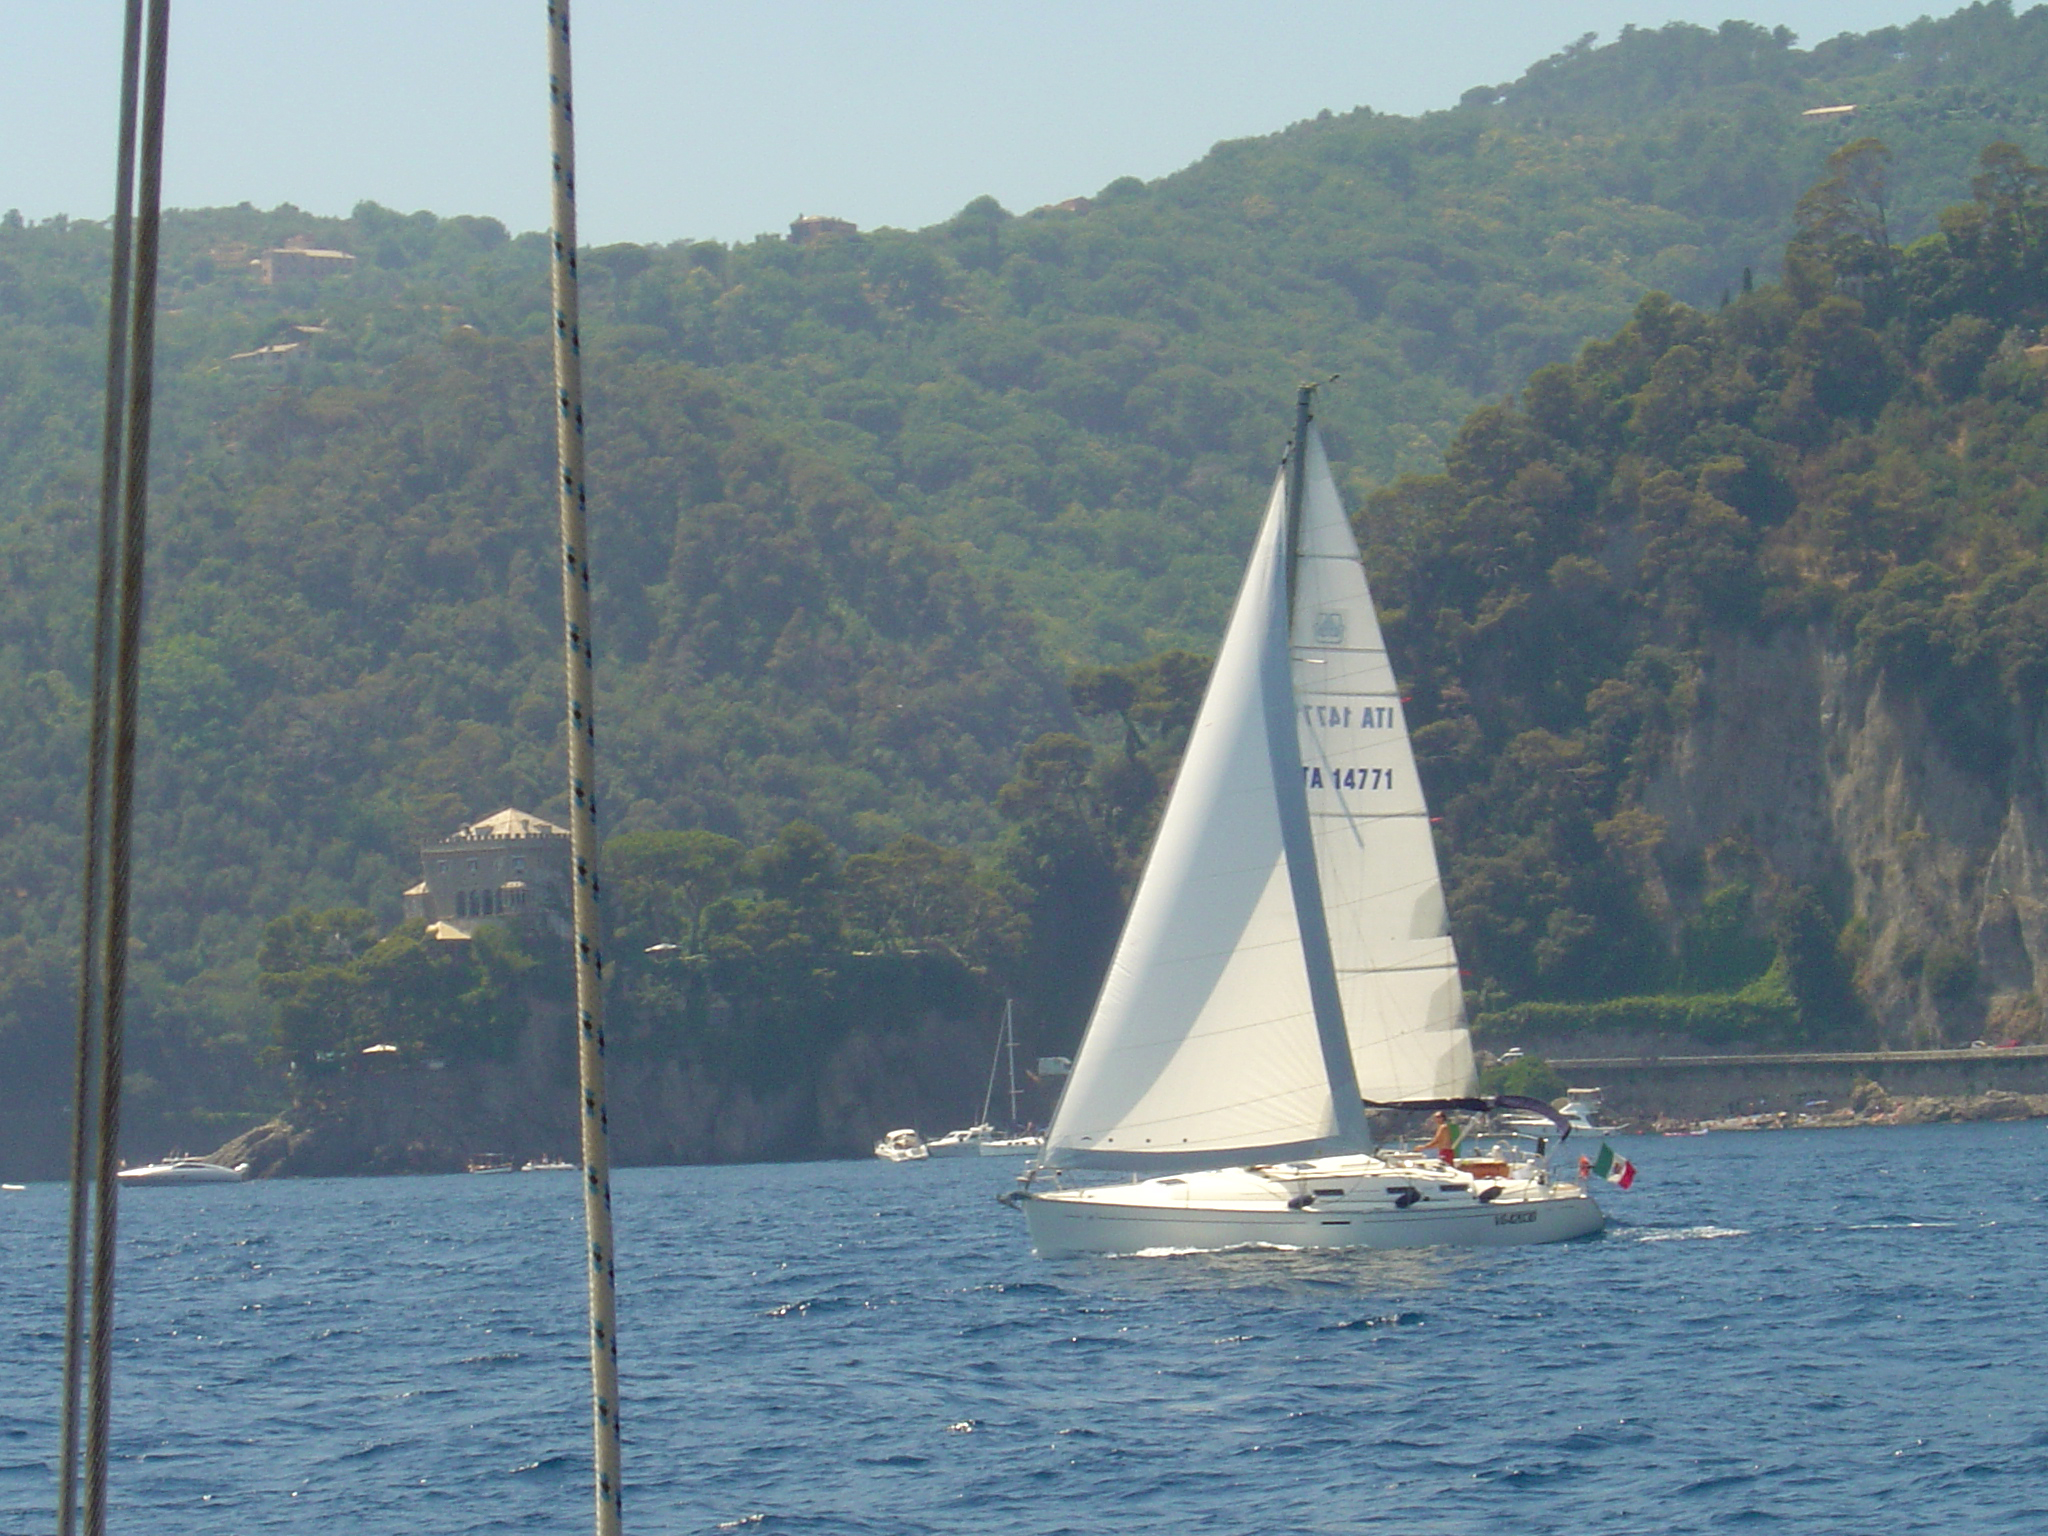 Who would not want to nap while sailing in the Ligurian Sea?!